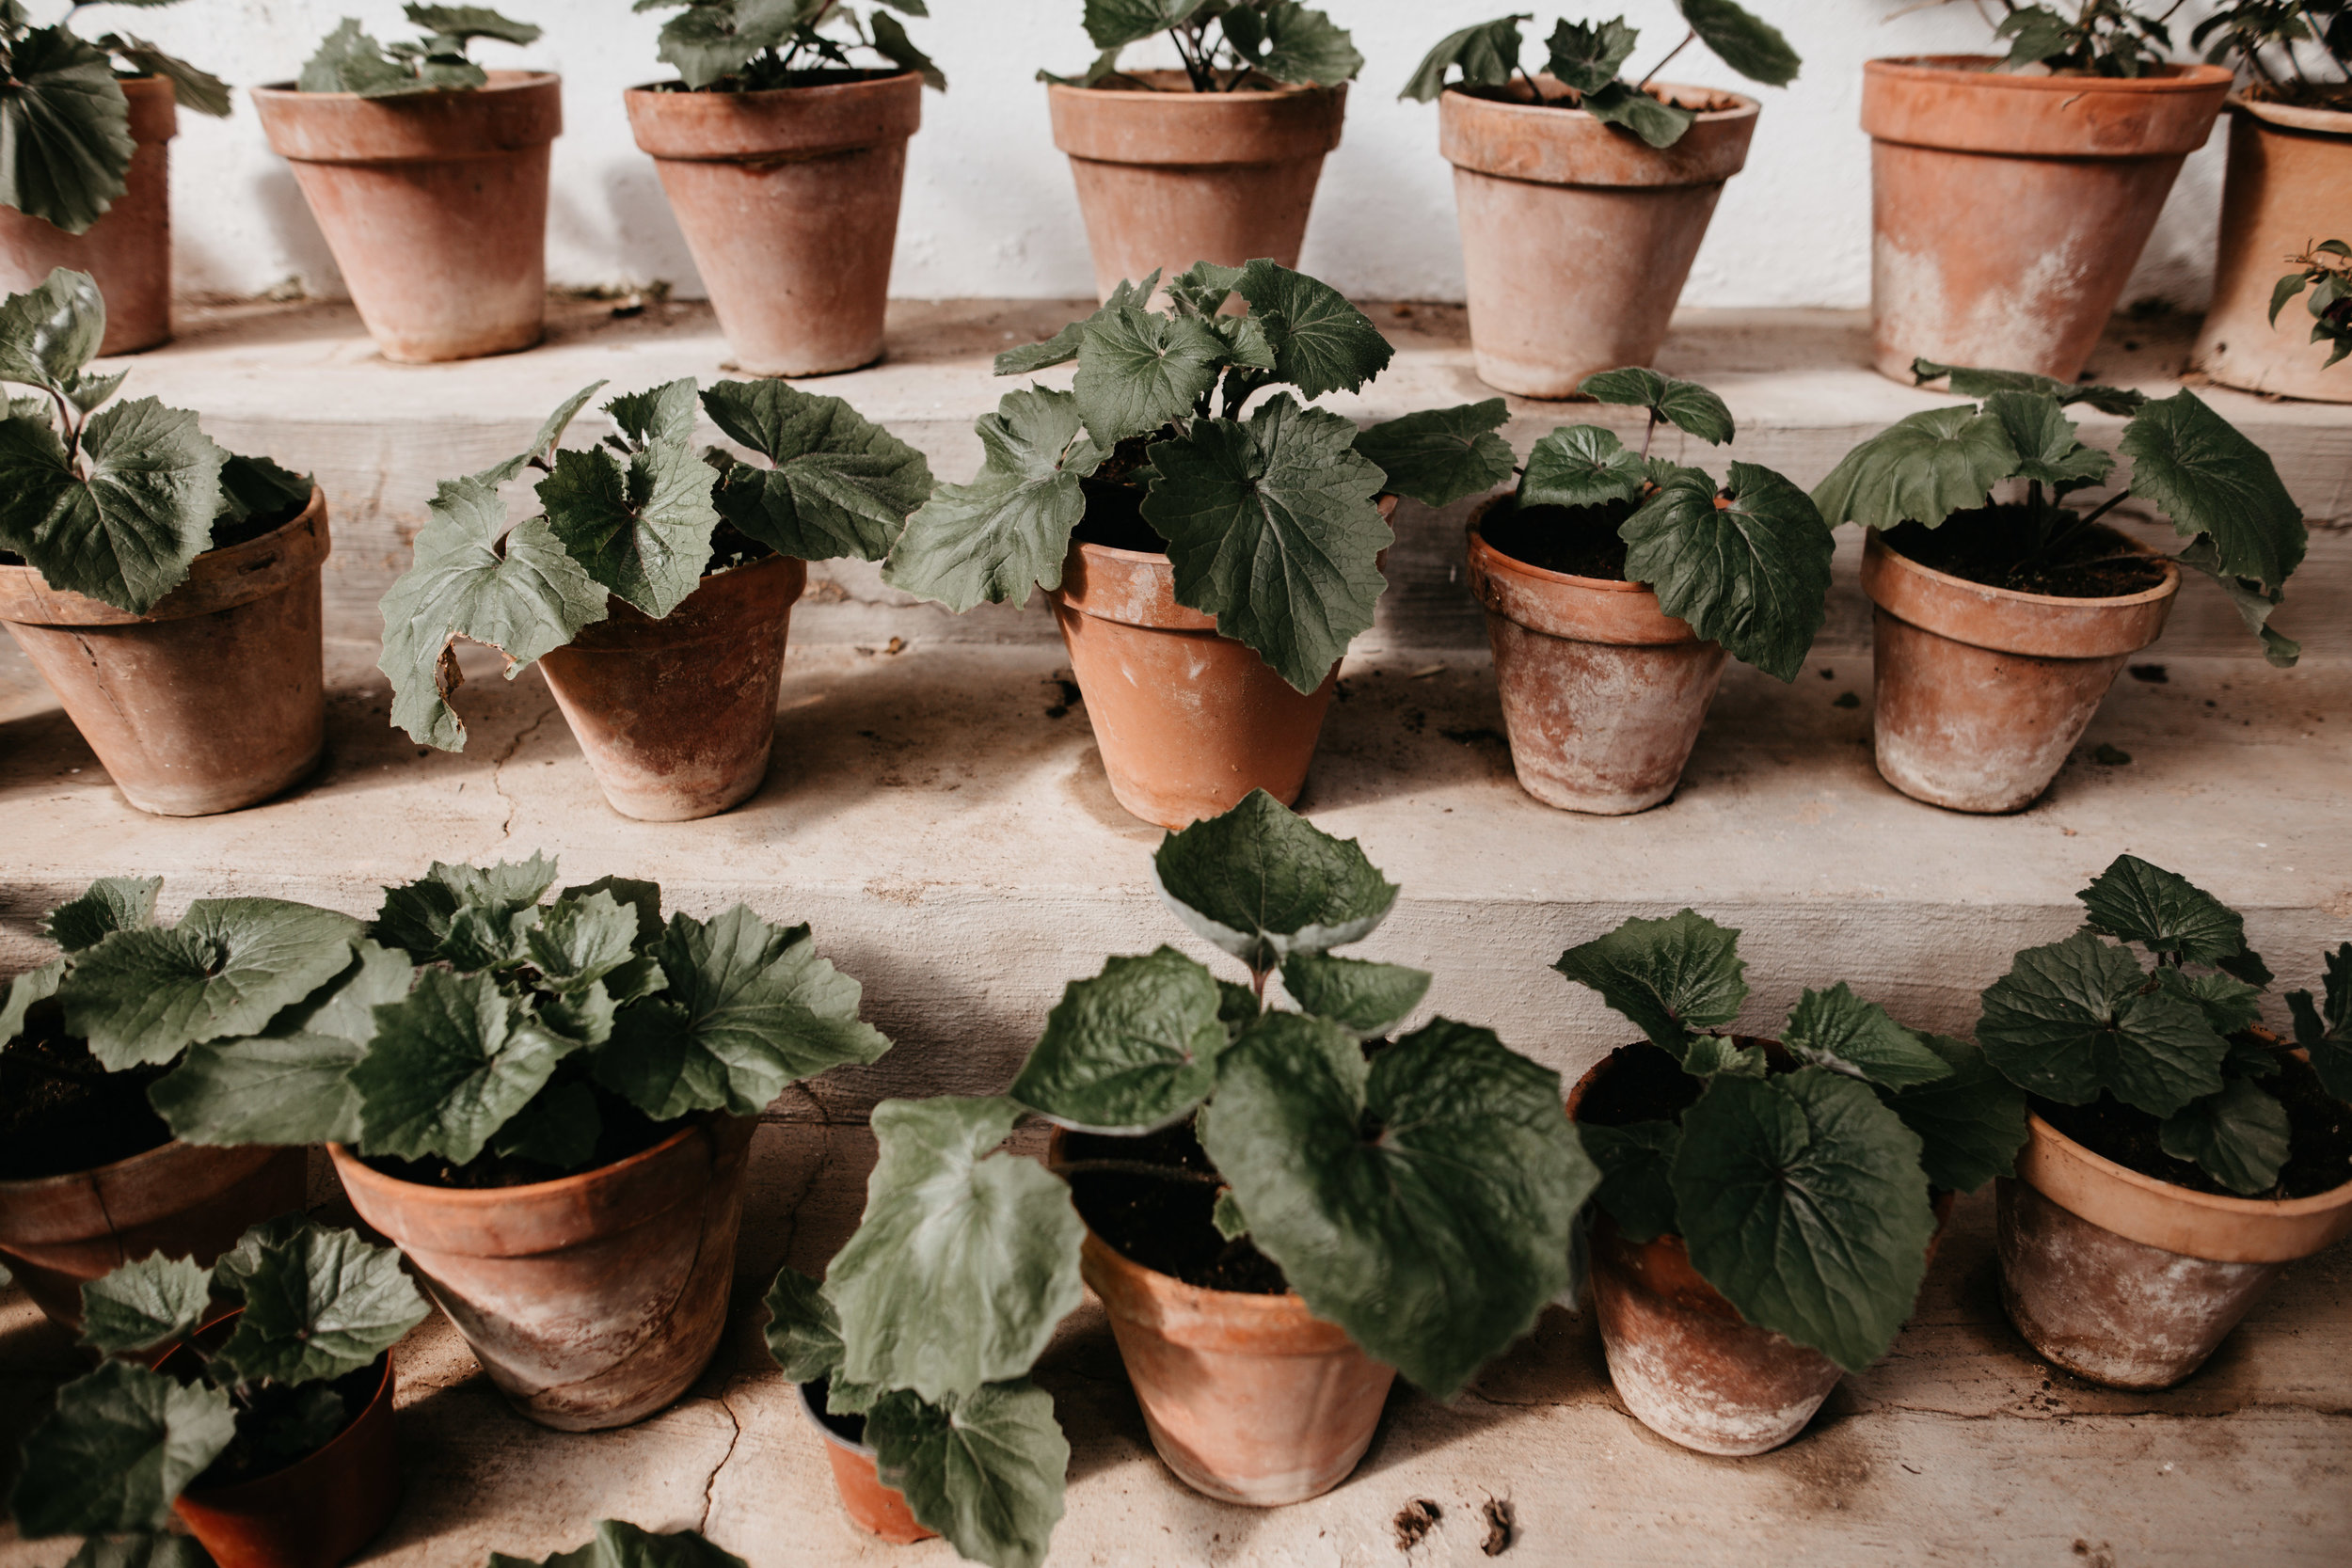 potted plants in greenhouse Spain